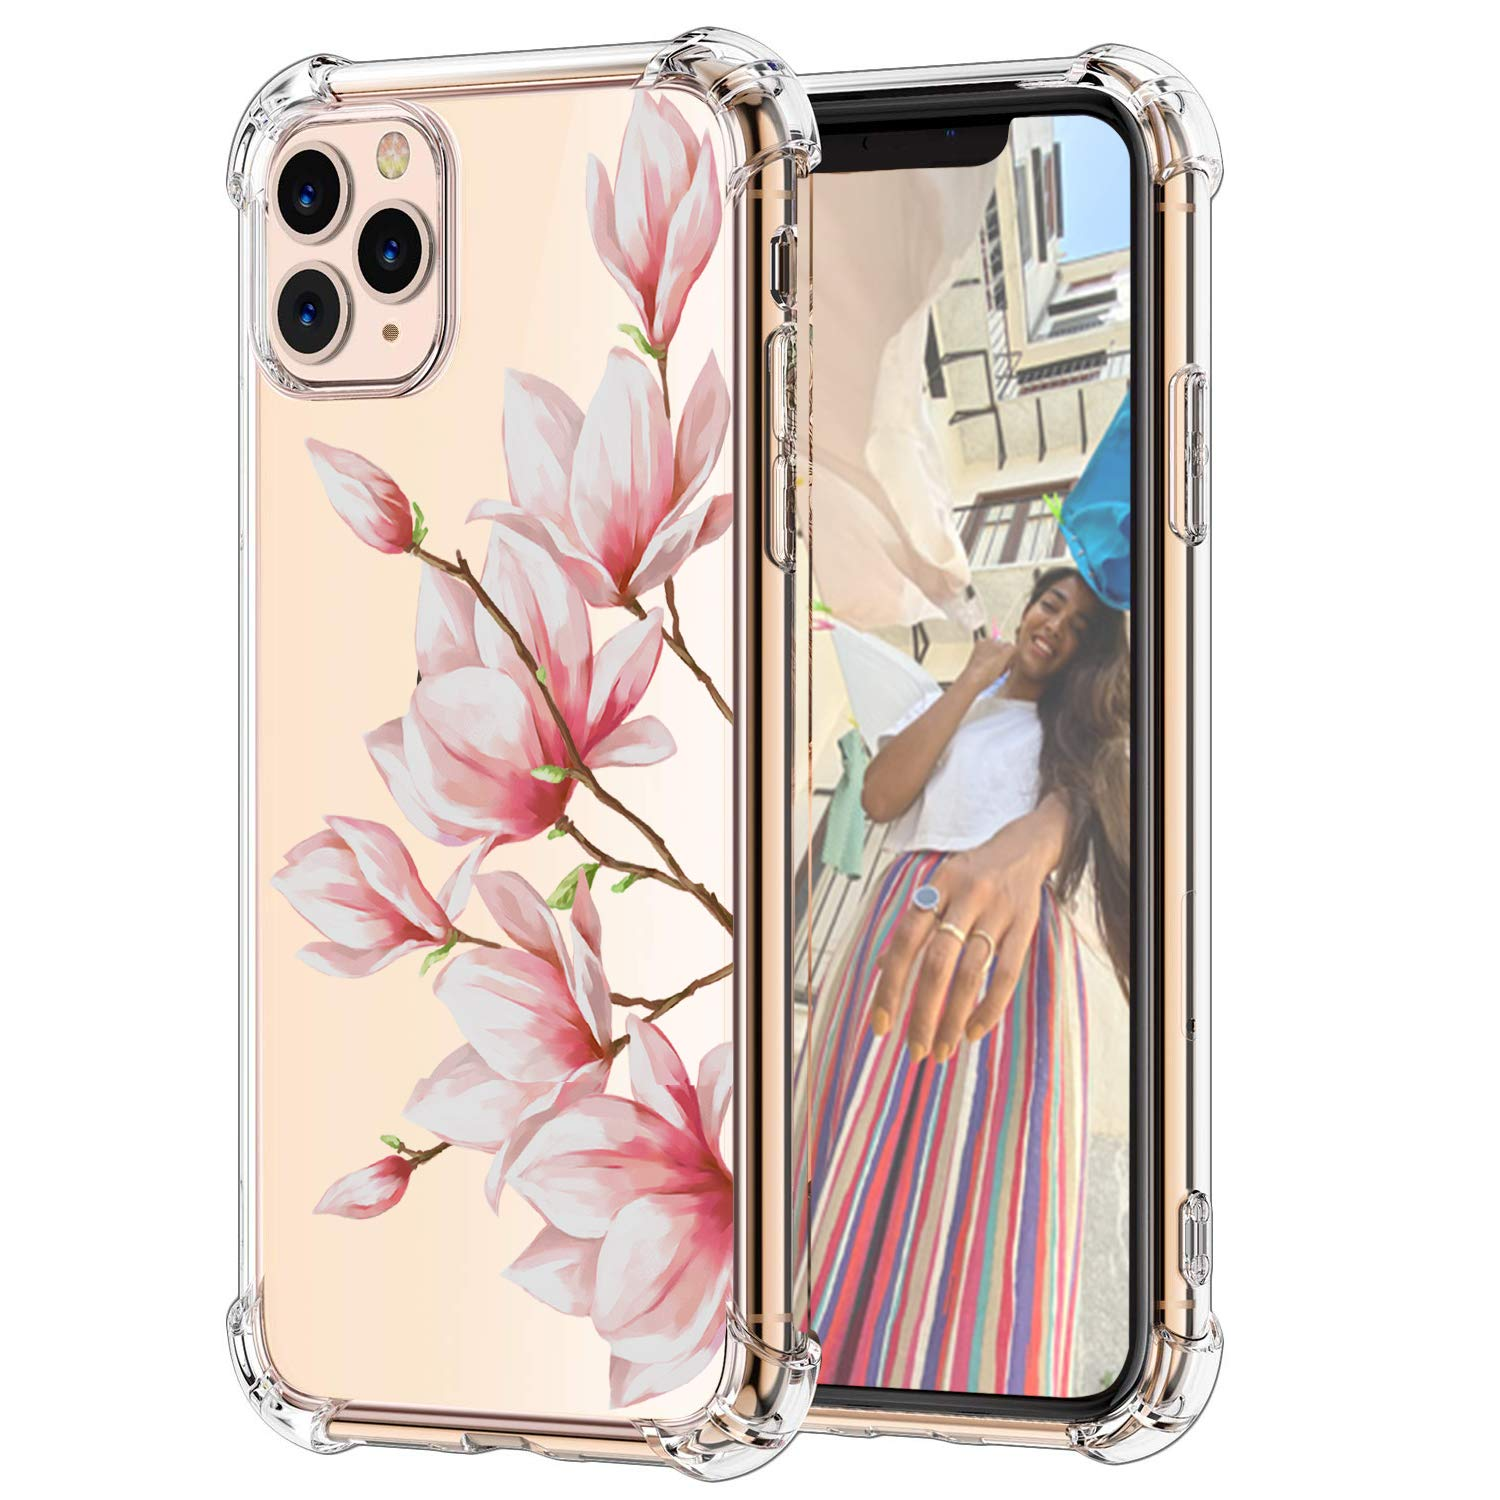 """Hepix Magnolia Floral iPhone 11 Pro Cases, Pink Flowers Design Clear iPhone Pro Cases, Slim Flexible TPU with 4 Protective Bumpers Shockproof Transparent iPhone Cover for iPhone 11 Pro 2019 (5.8"""")"""